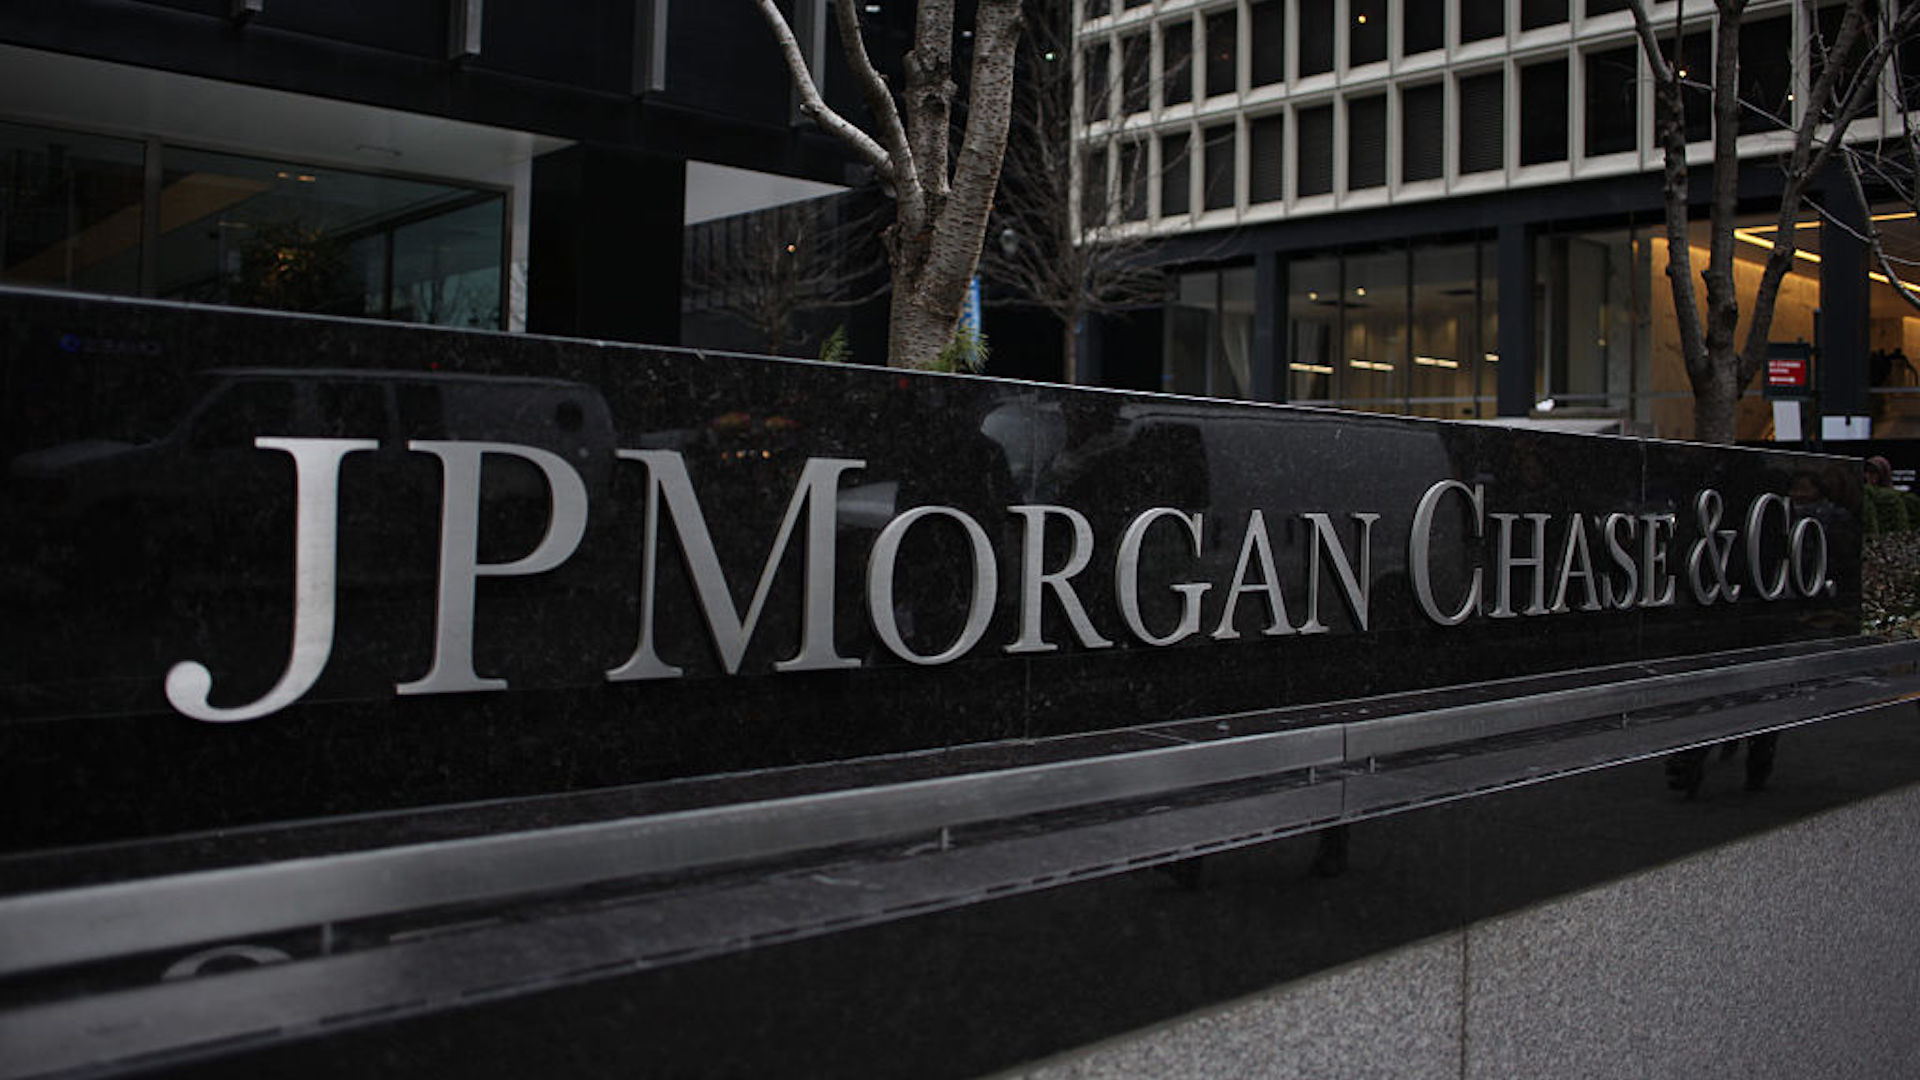 Jp morgan announces new investment free option